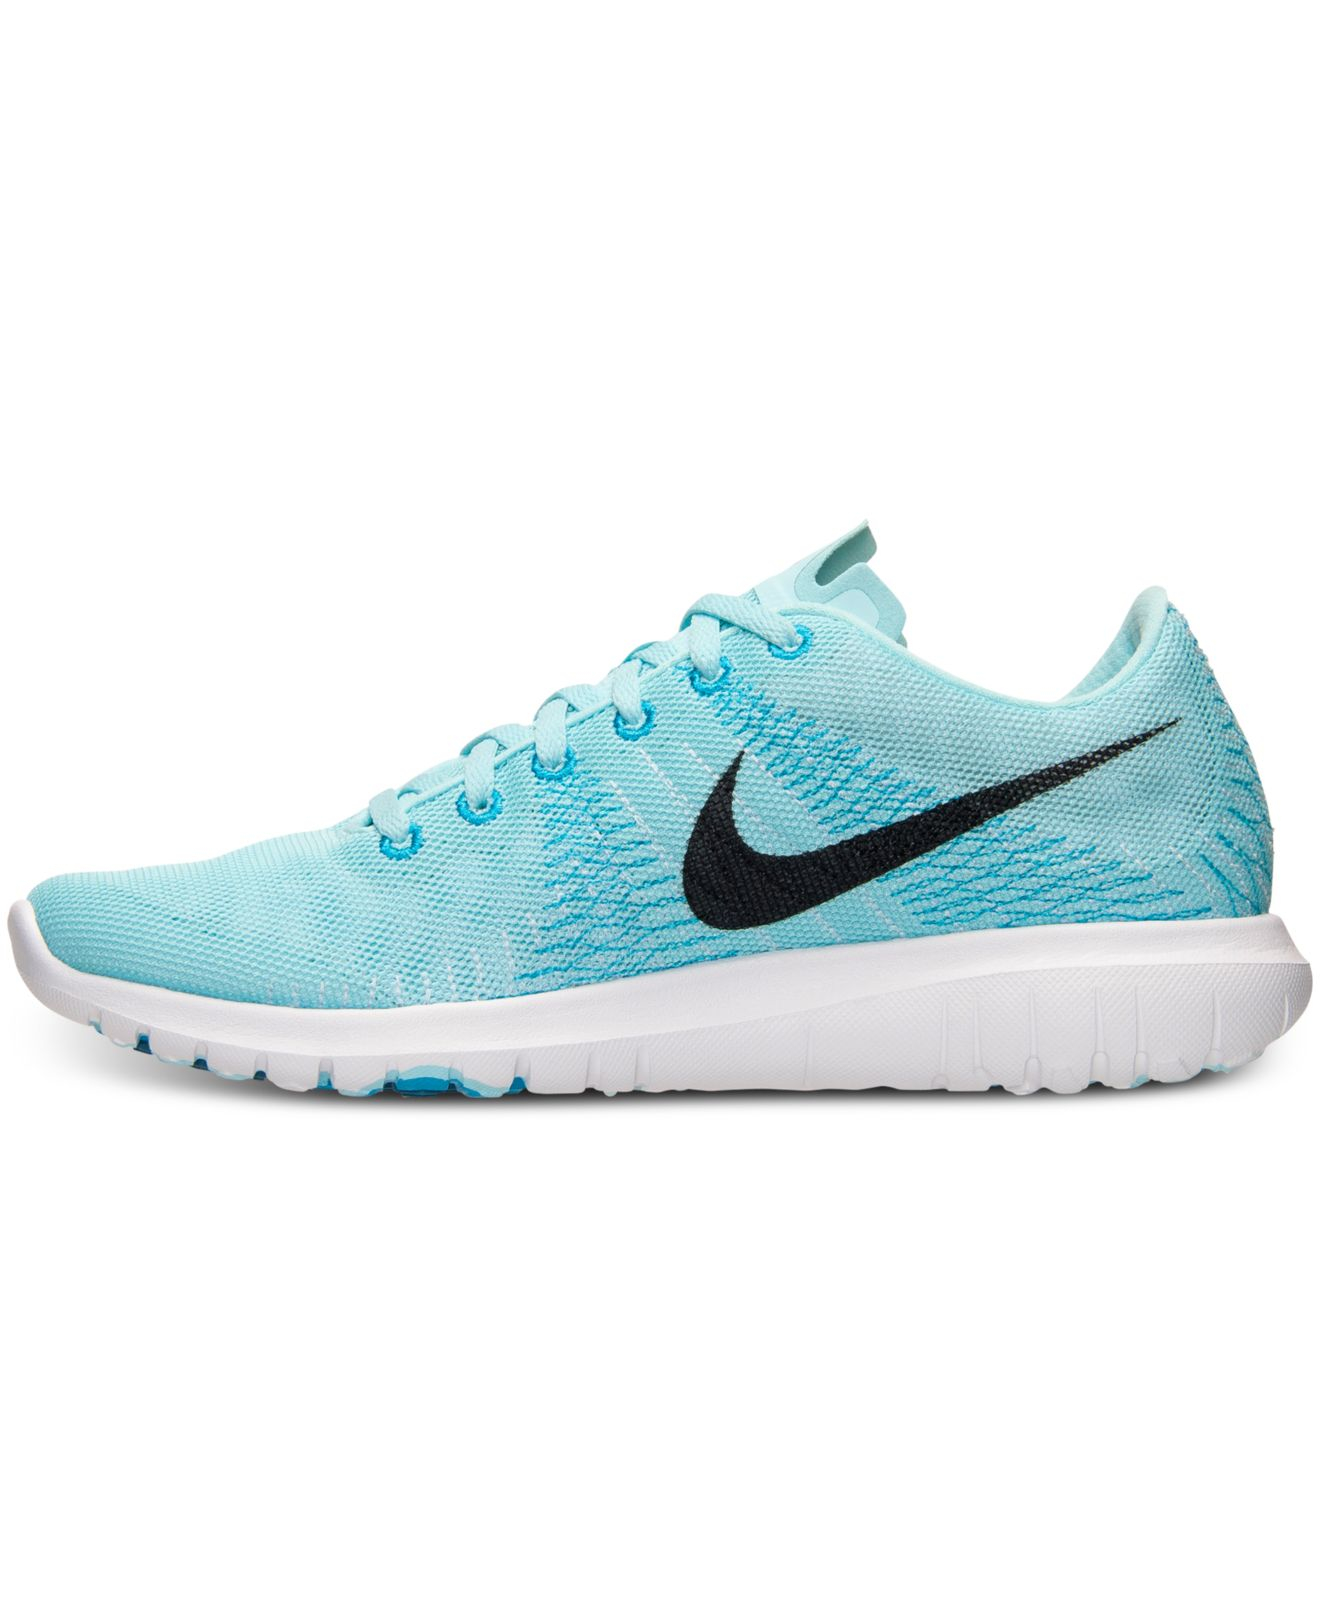 b50b345724f ... hot lyst nike womens flex fury running sneakers from finish line in  blue 62d8a 7141c ...